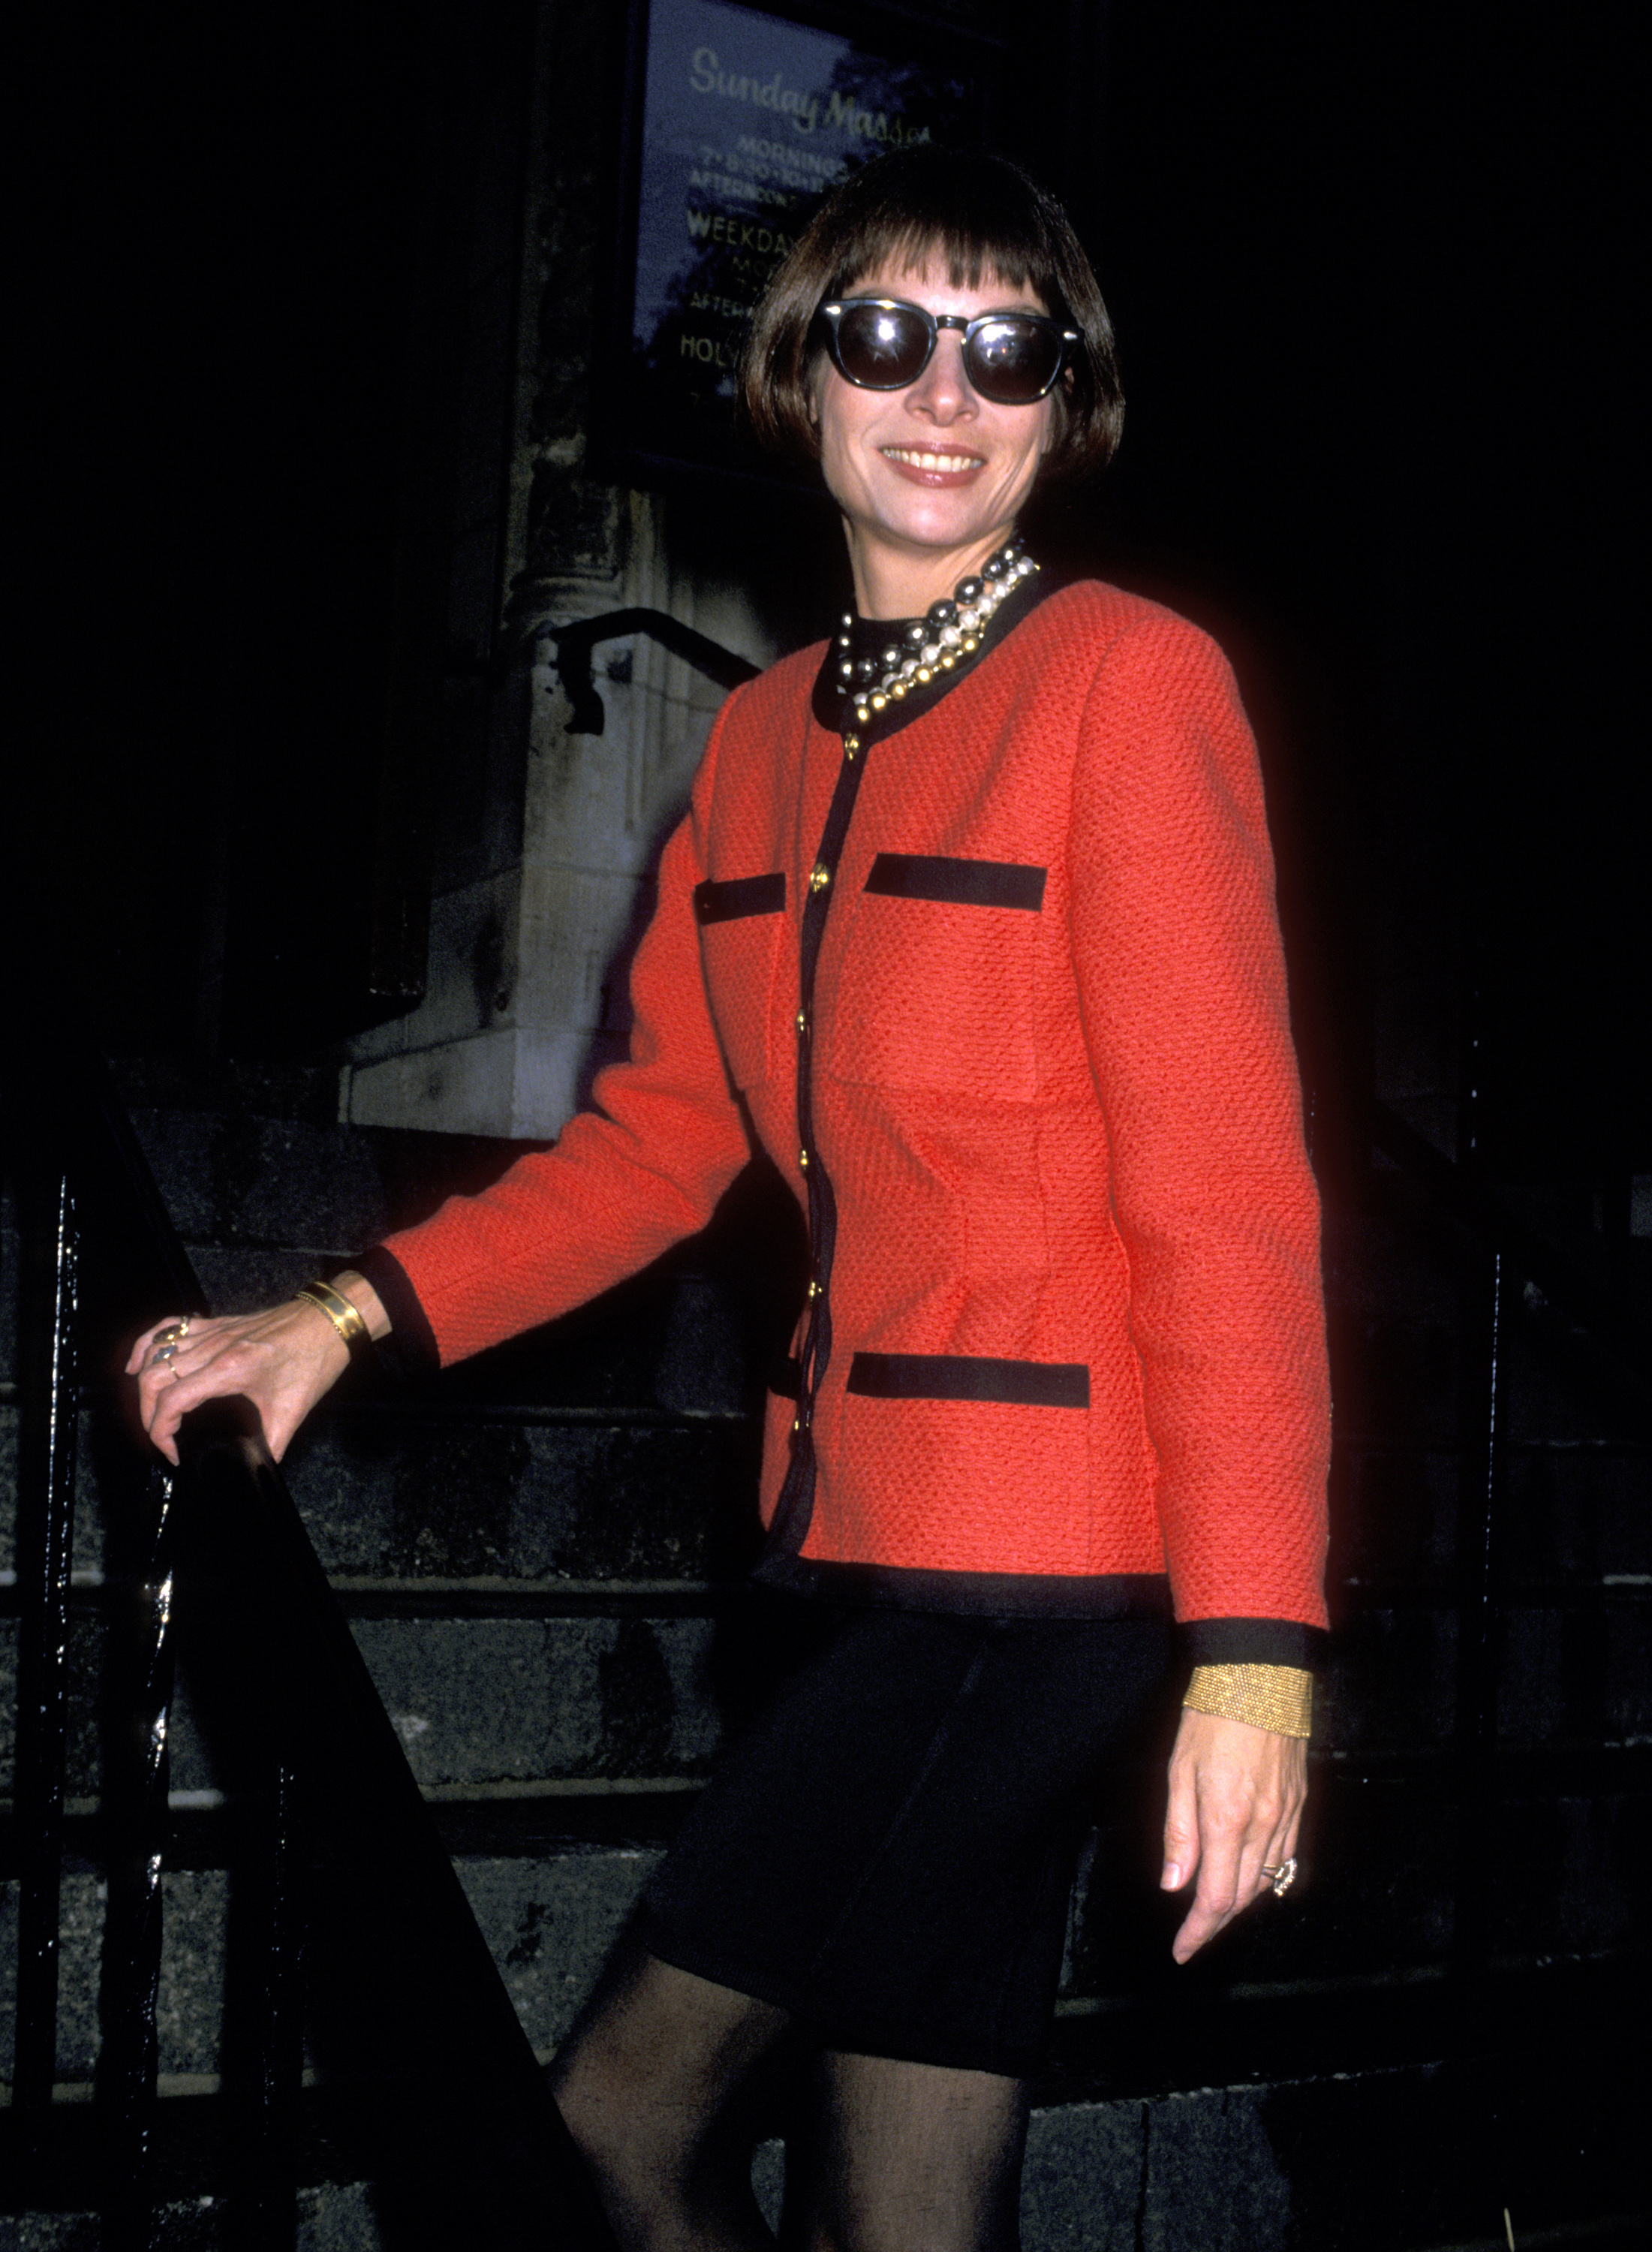 #TBT: Anna Wintour | The Boss of Fashion